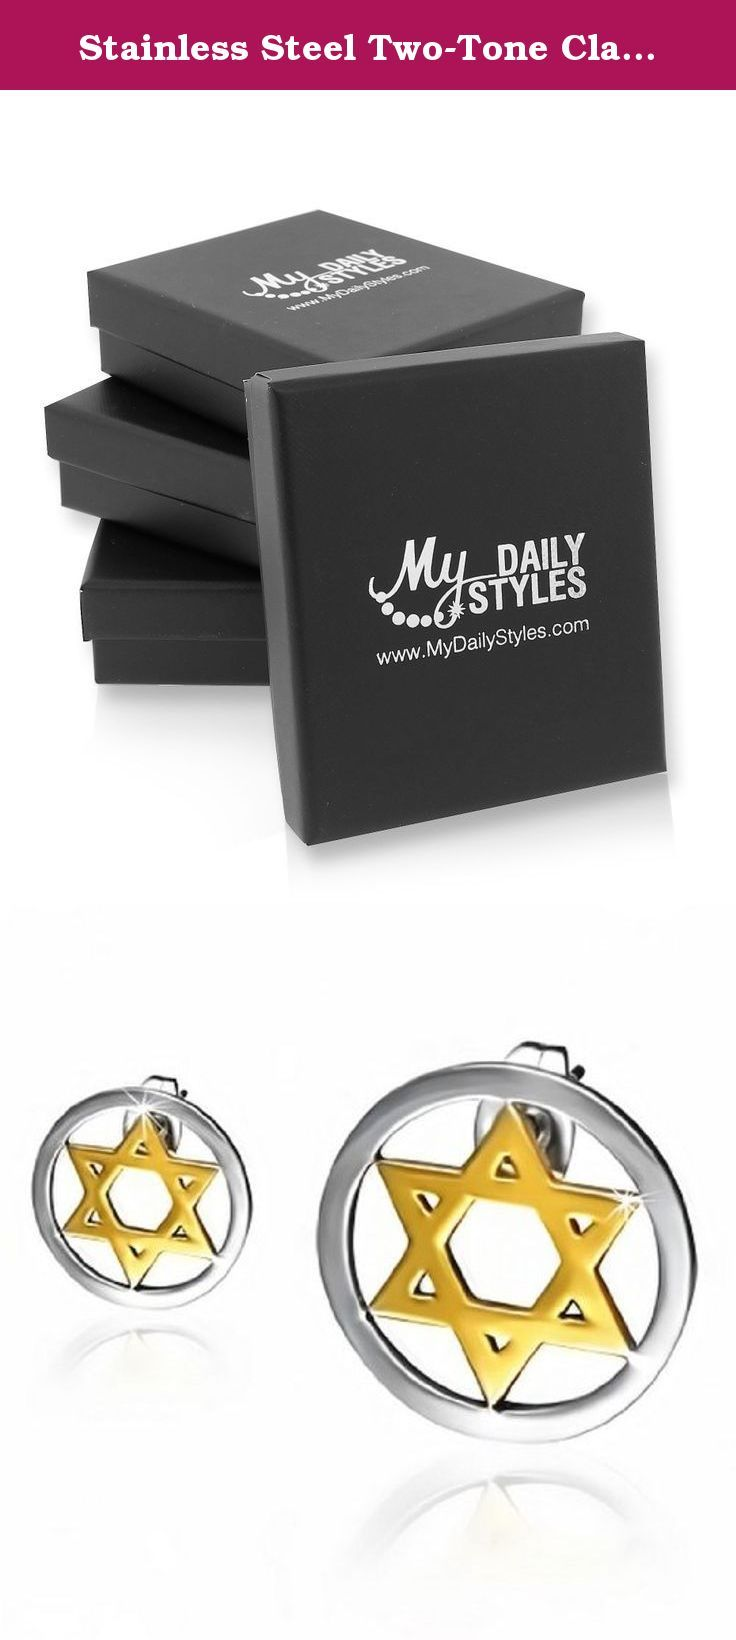 Stainless Steel Two-Tone Classic Jewish Star of David Small Stud Earrings. These earrings are a perfect gift for anyone. Give it to your loved one, or treat yourself for a classic timeless style. These stud earrings are crafted of durable highly polished 100% stainless steel, rhodium and yellow gold plated. The jewelry showcases a simple yet classic design featuring star of David-shaped charms set inside of a circle and shining with the highly polished finish. The earrings secure with...